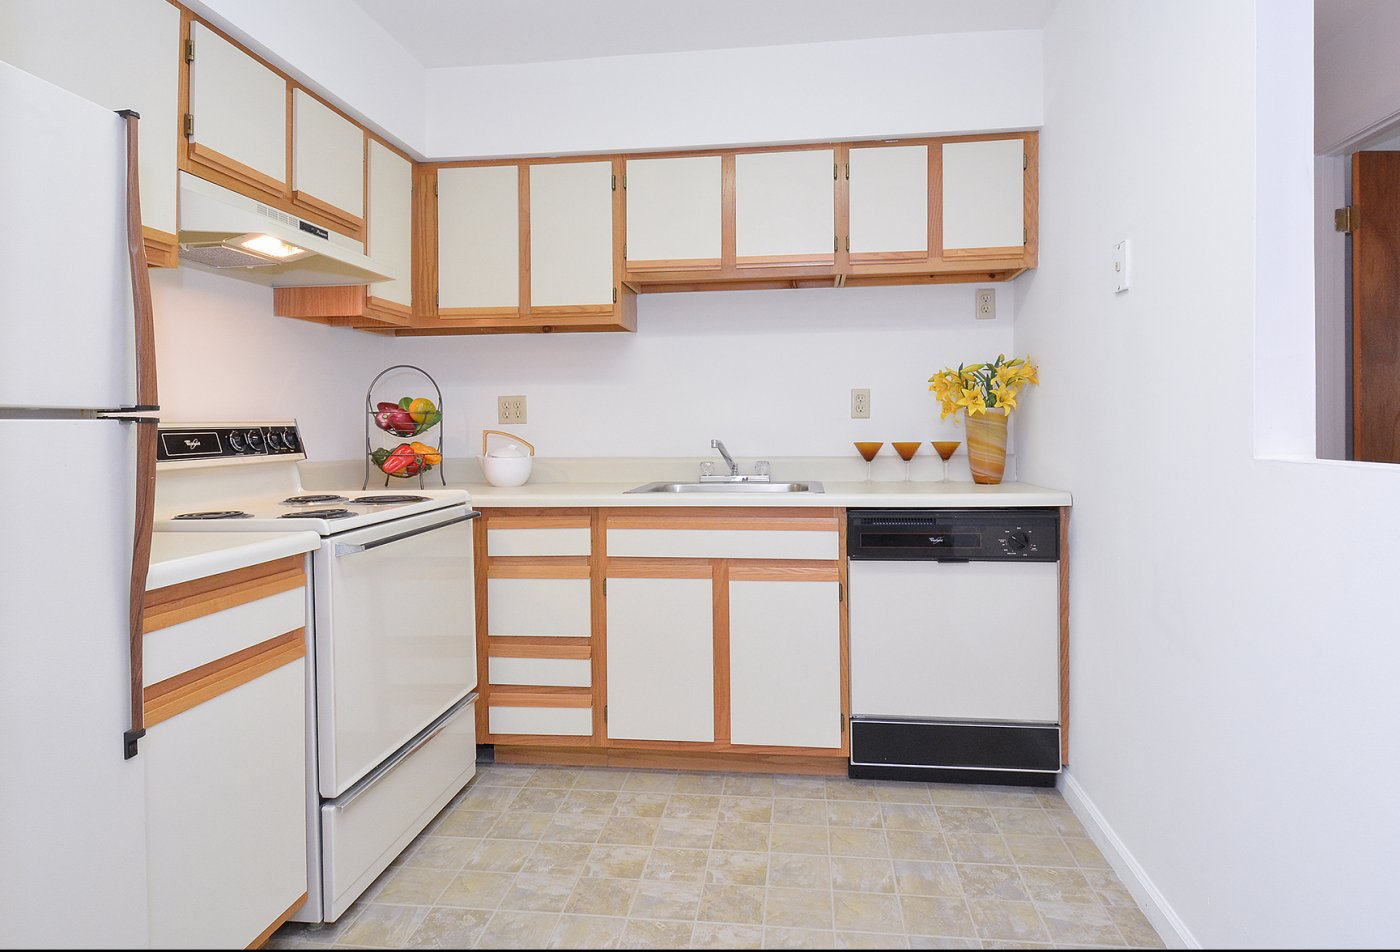 Luxurious Kitchen | Apartment Homes in King of Prussia, PA | Valley Forge Suites